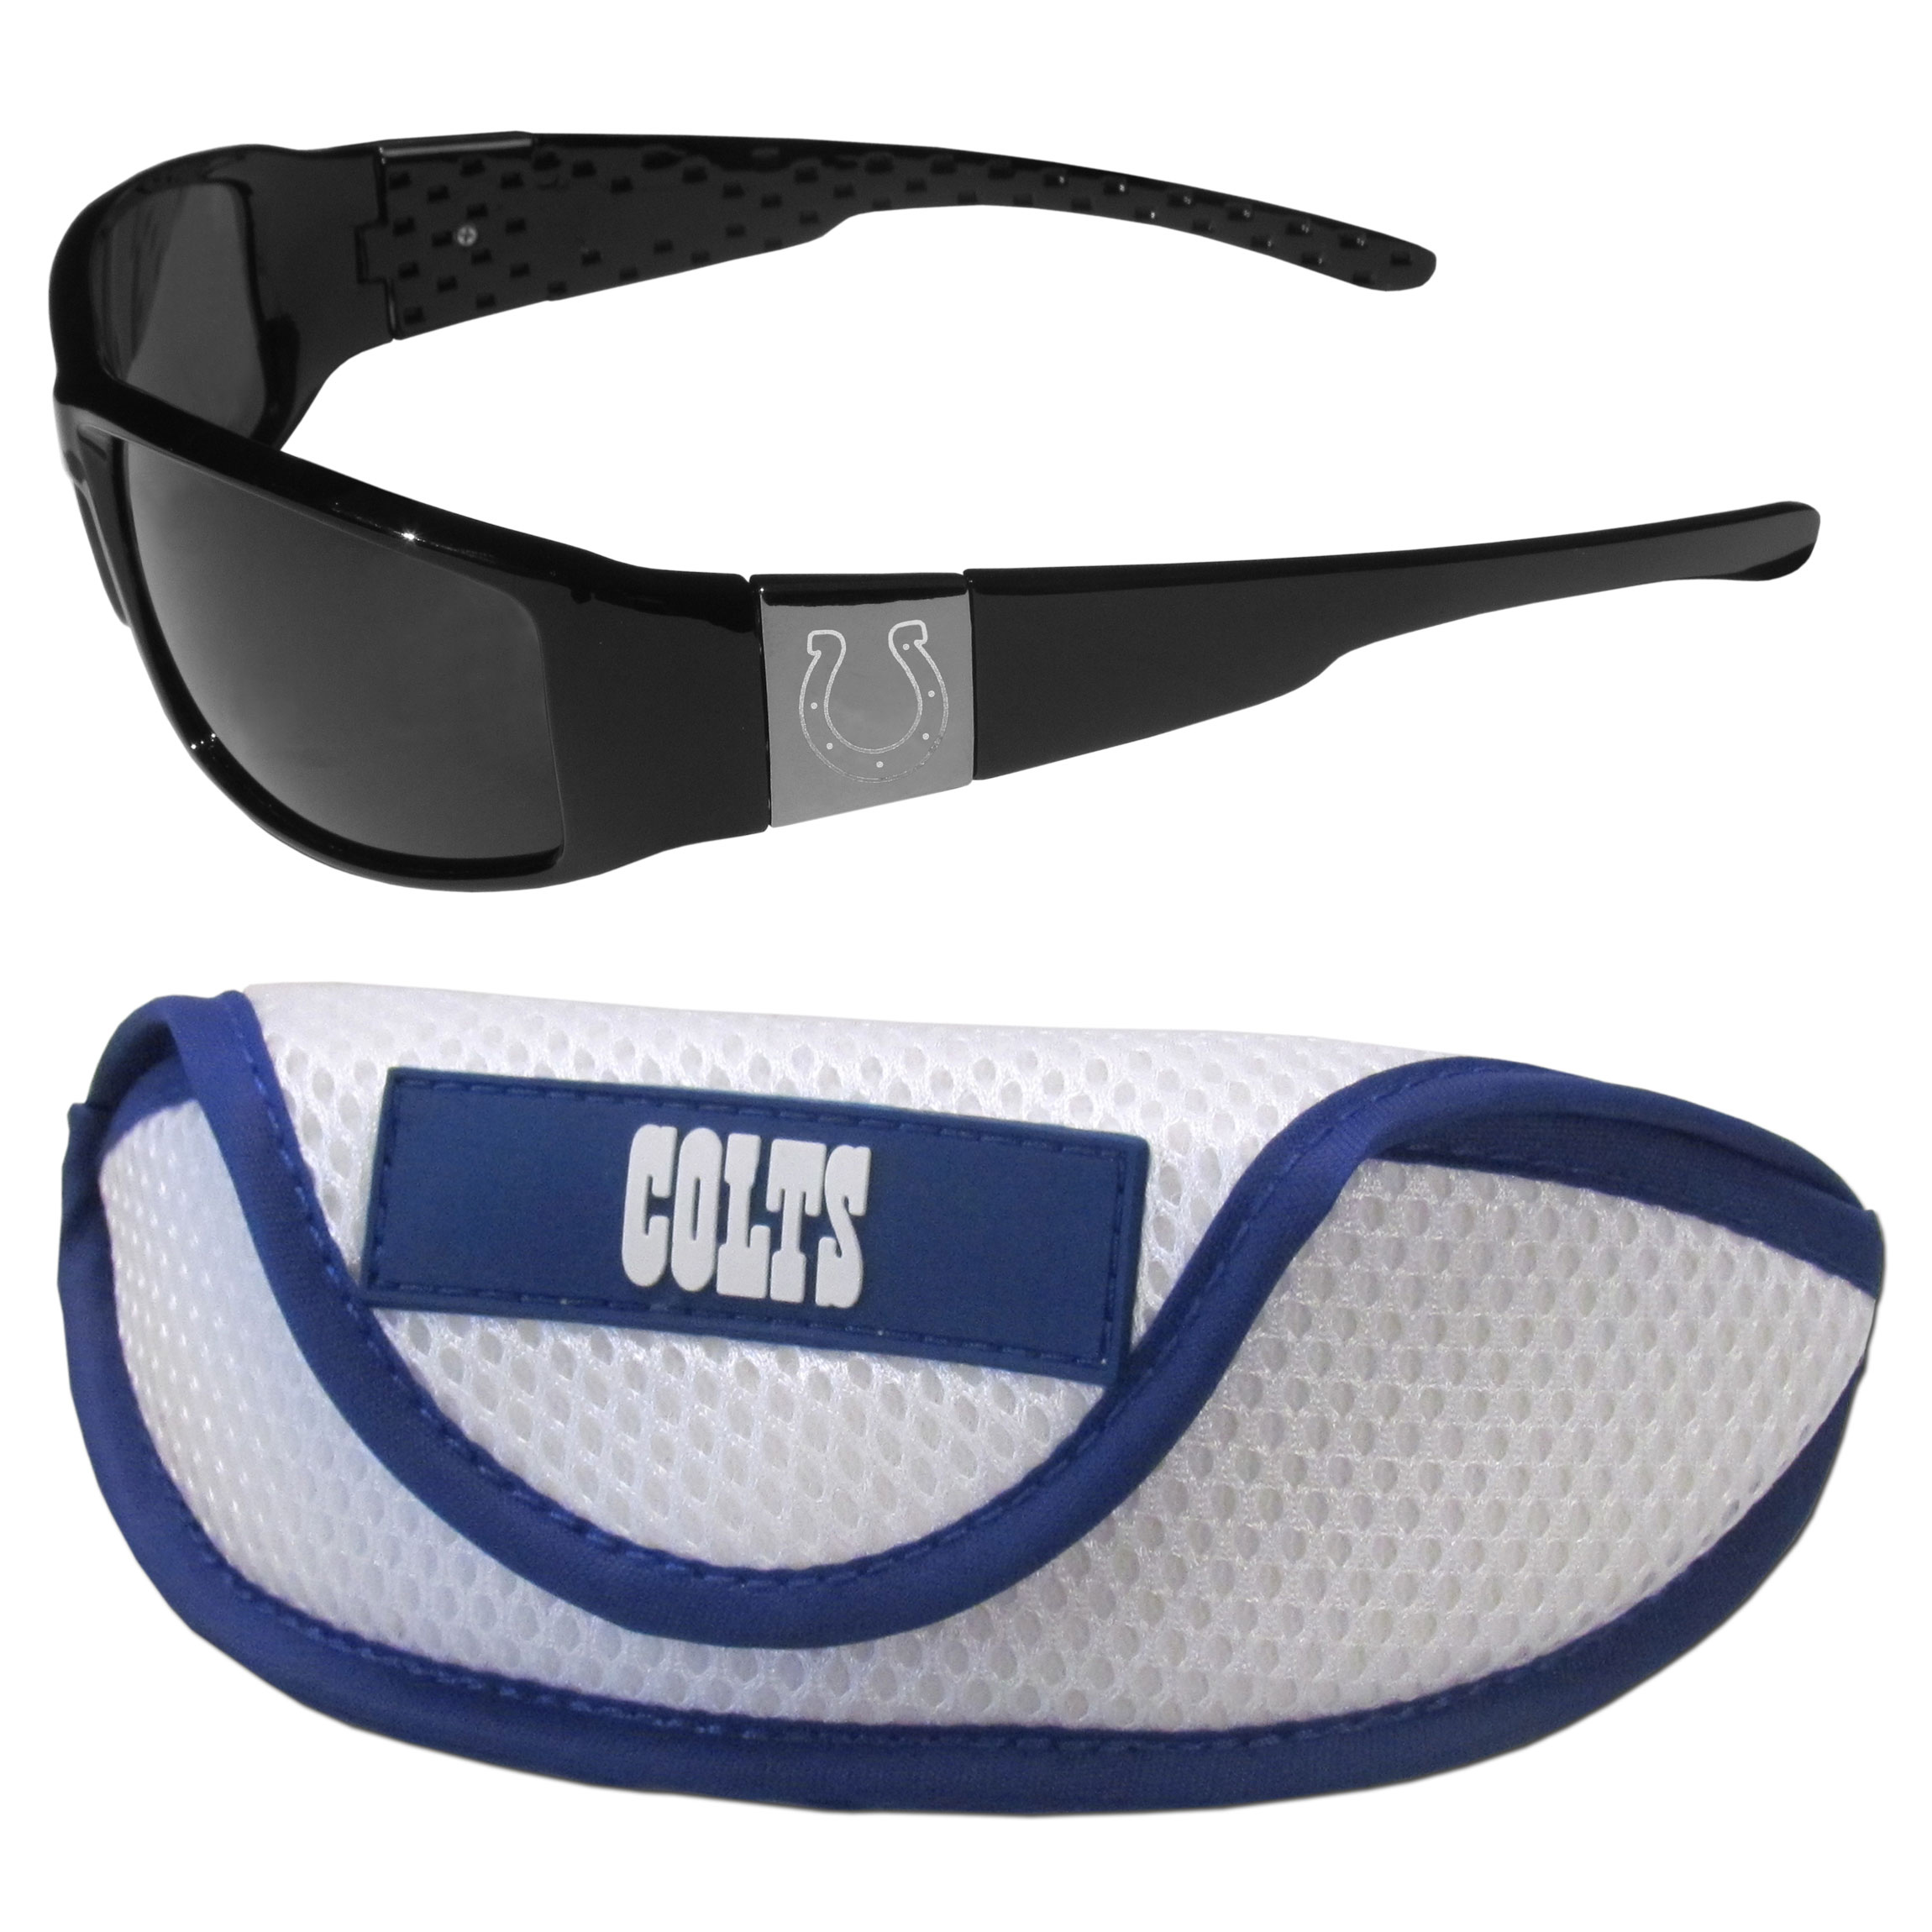 Indianapolis Colts Chrome Wrap Sunglasses and Sports Case - Our sleek and stylish Indianapolis Colts chrome wrap sunglasses and our sporty mesh case. The sunglasses feature etched team logos on each arm and 100% UVA/UVB protection. The case features a large and colorful team emblem.